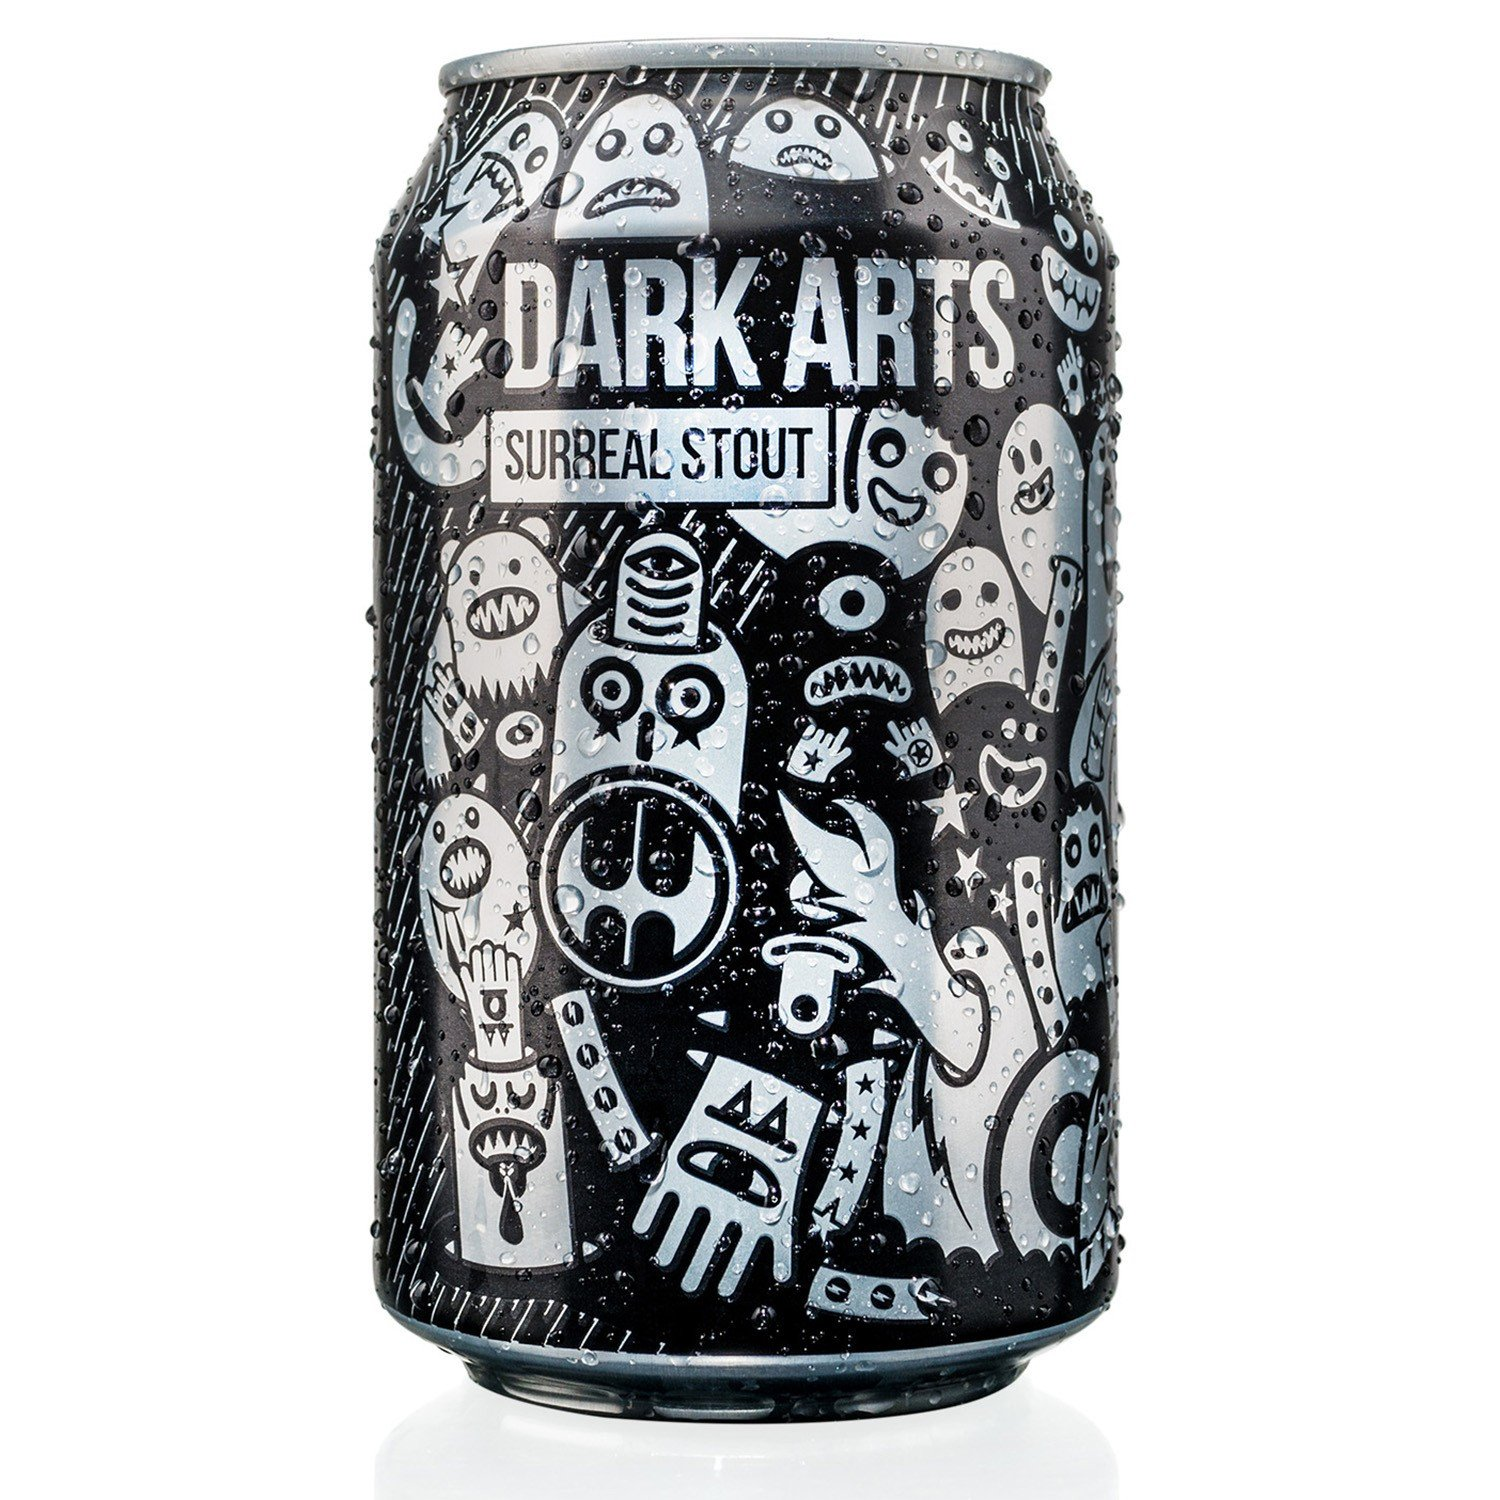 MAGIC ROCK DARK ARTS STOUT (6%ABV)  Four malts and bags of whole hops make a for a decadent deep and indulgent experience!  €2.95